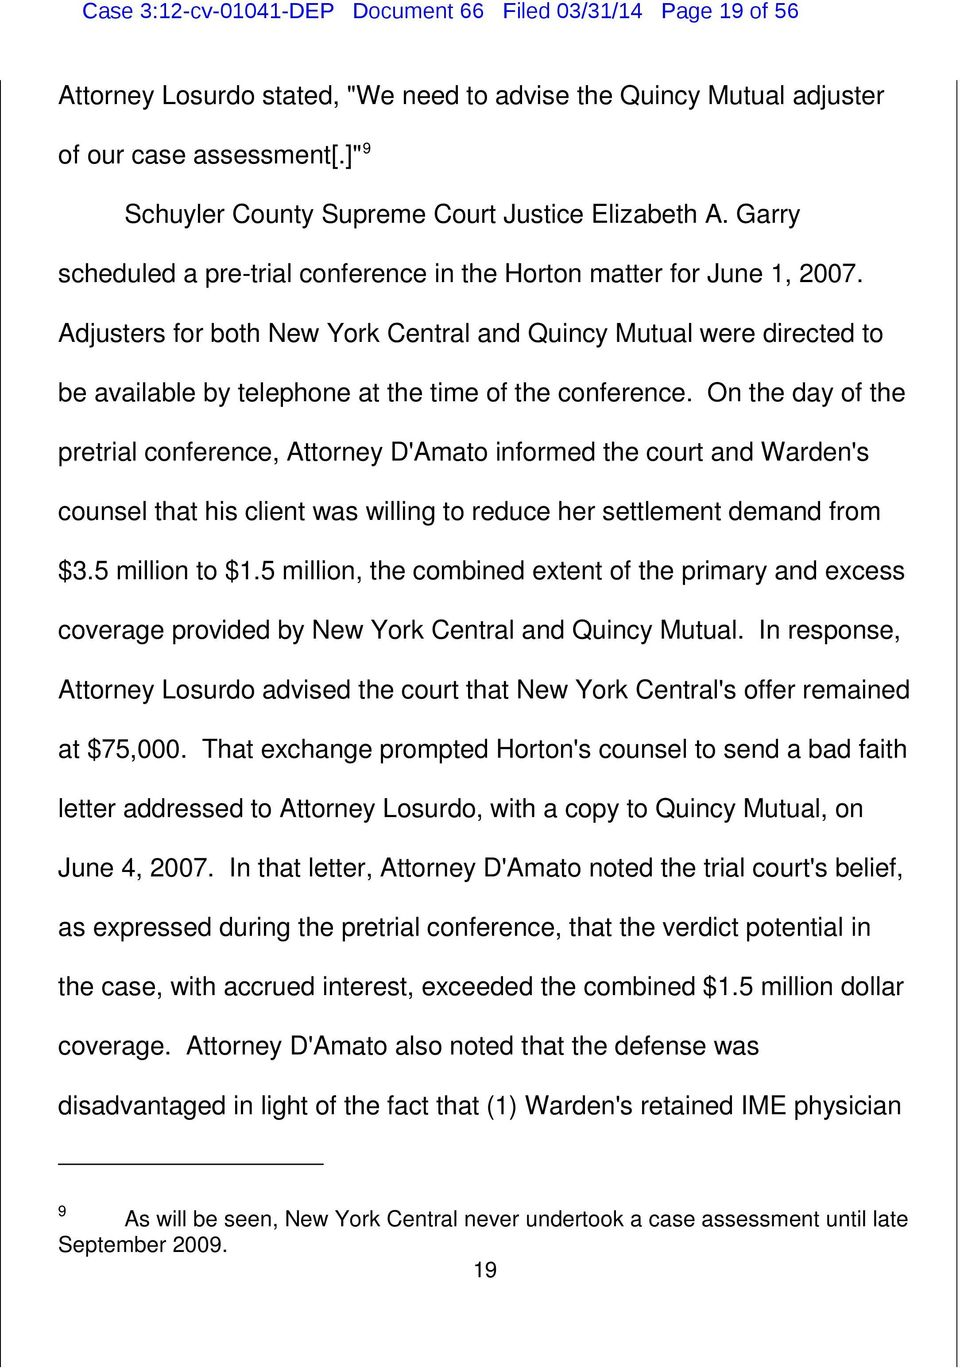 Adjusters for both New York Central and Quincy Mutual were directed to be available by telephone at the time of the conference.